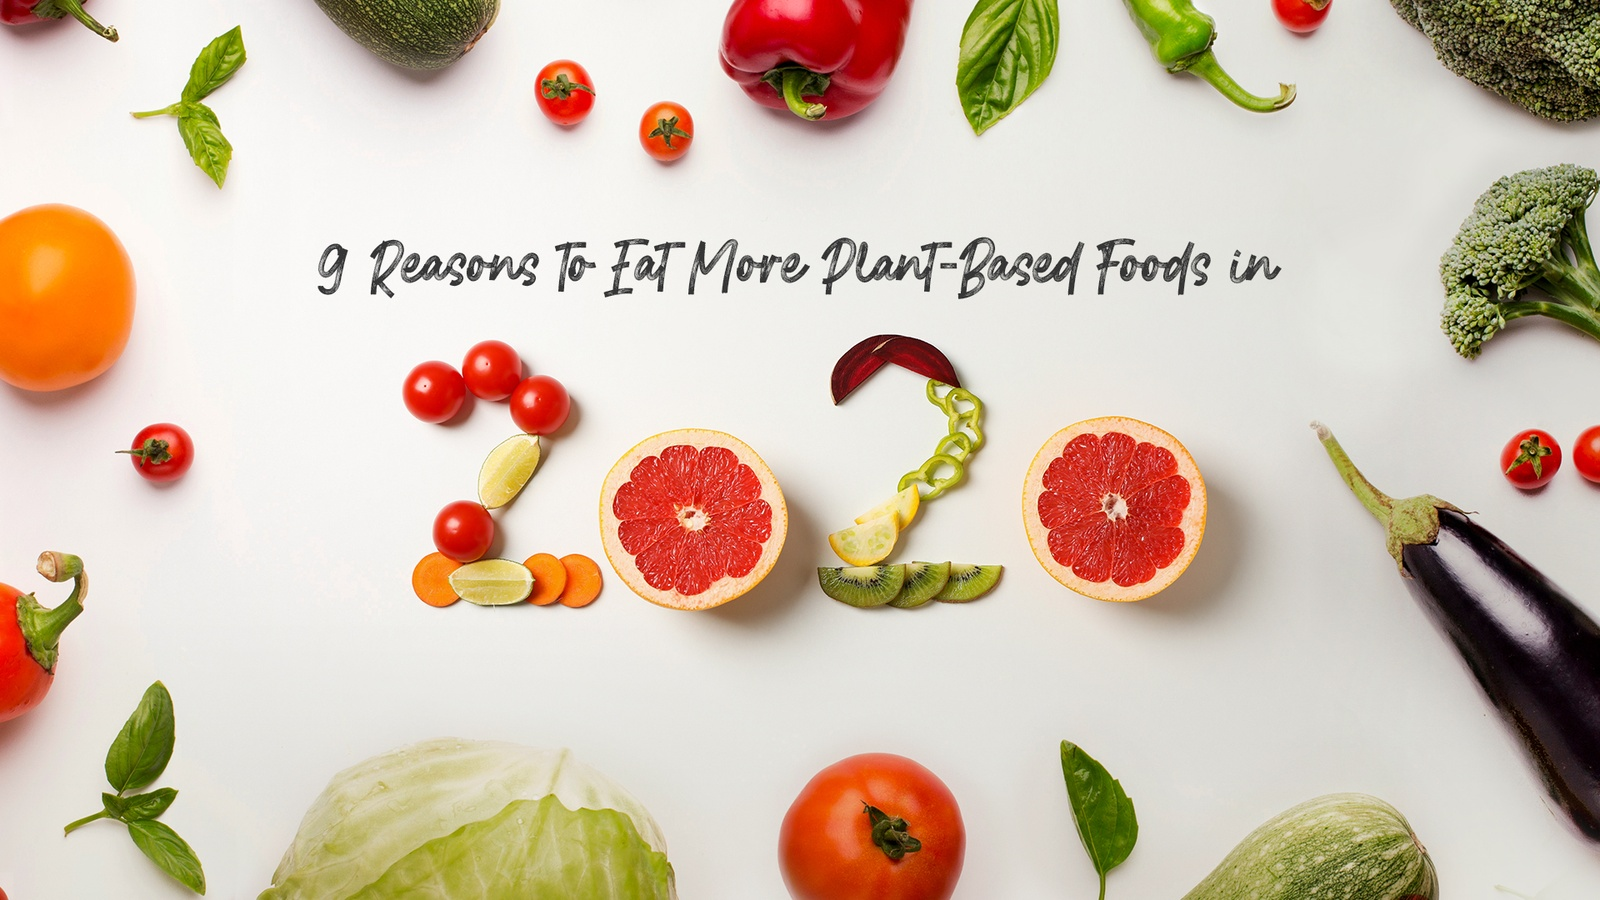 9 Reasons to Eat More Plant-Based Foods in 2020